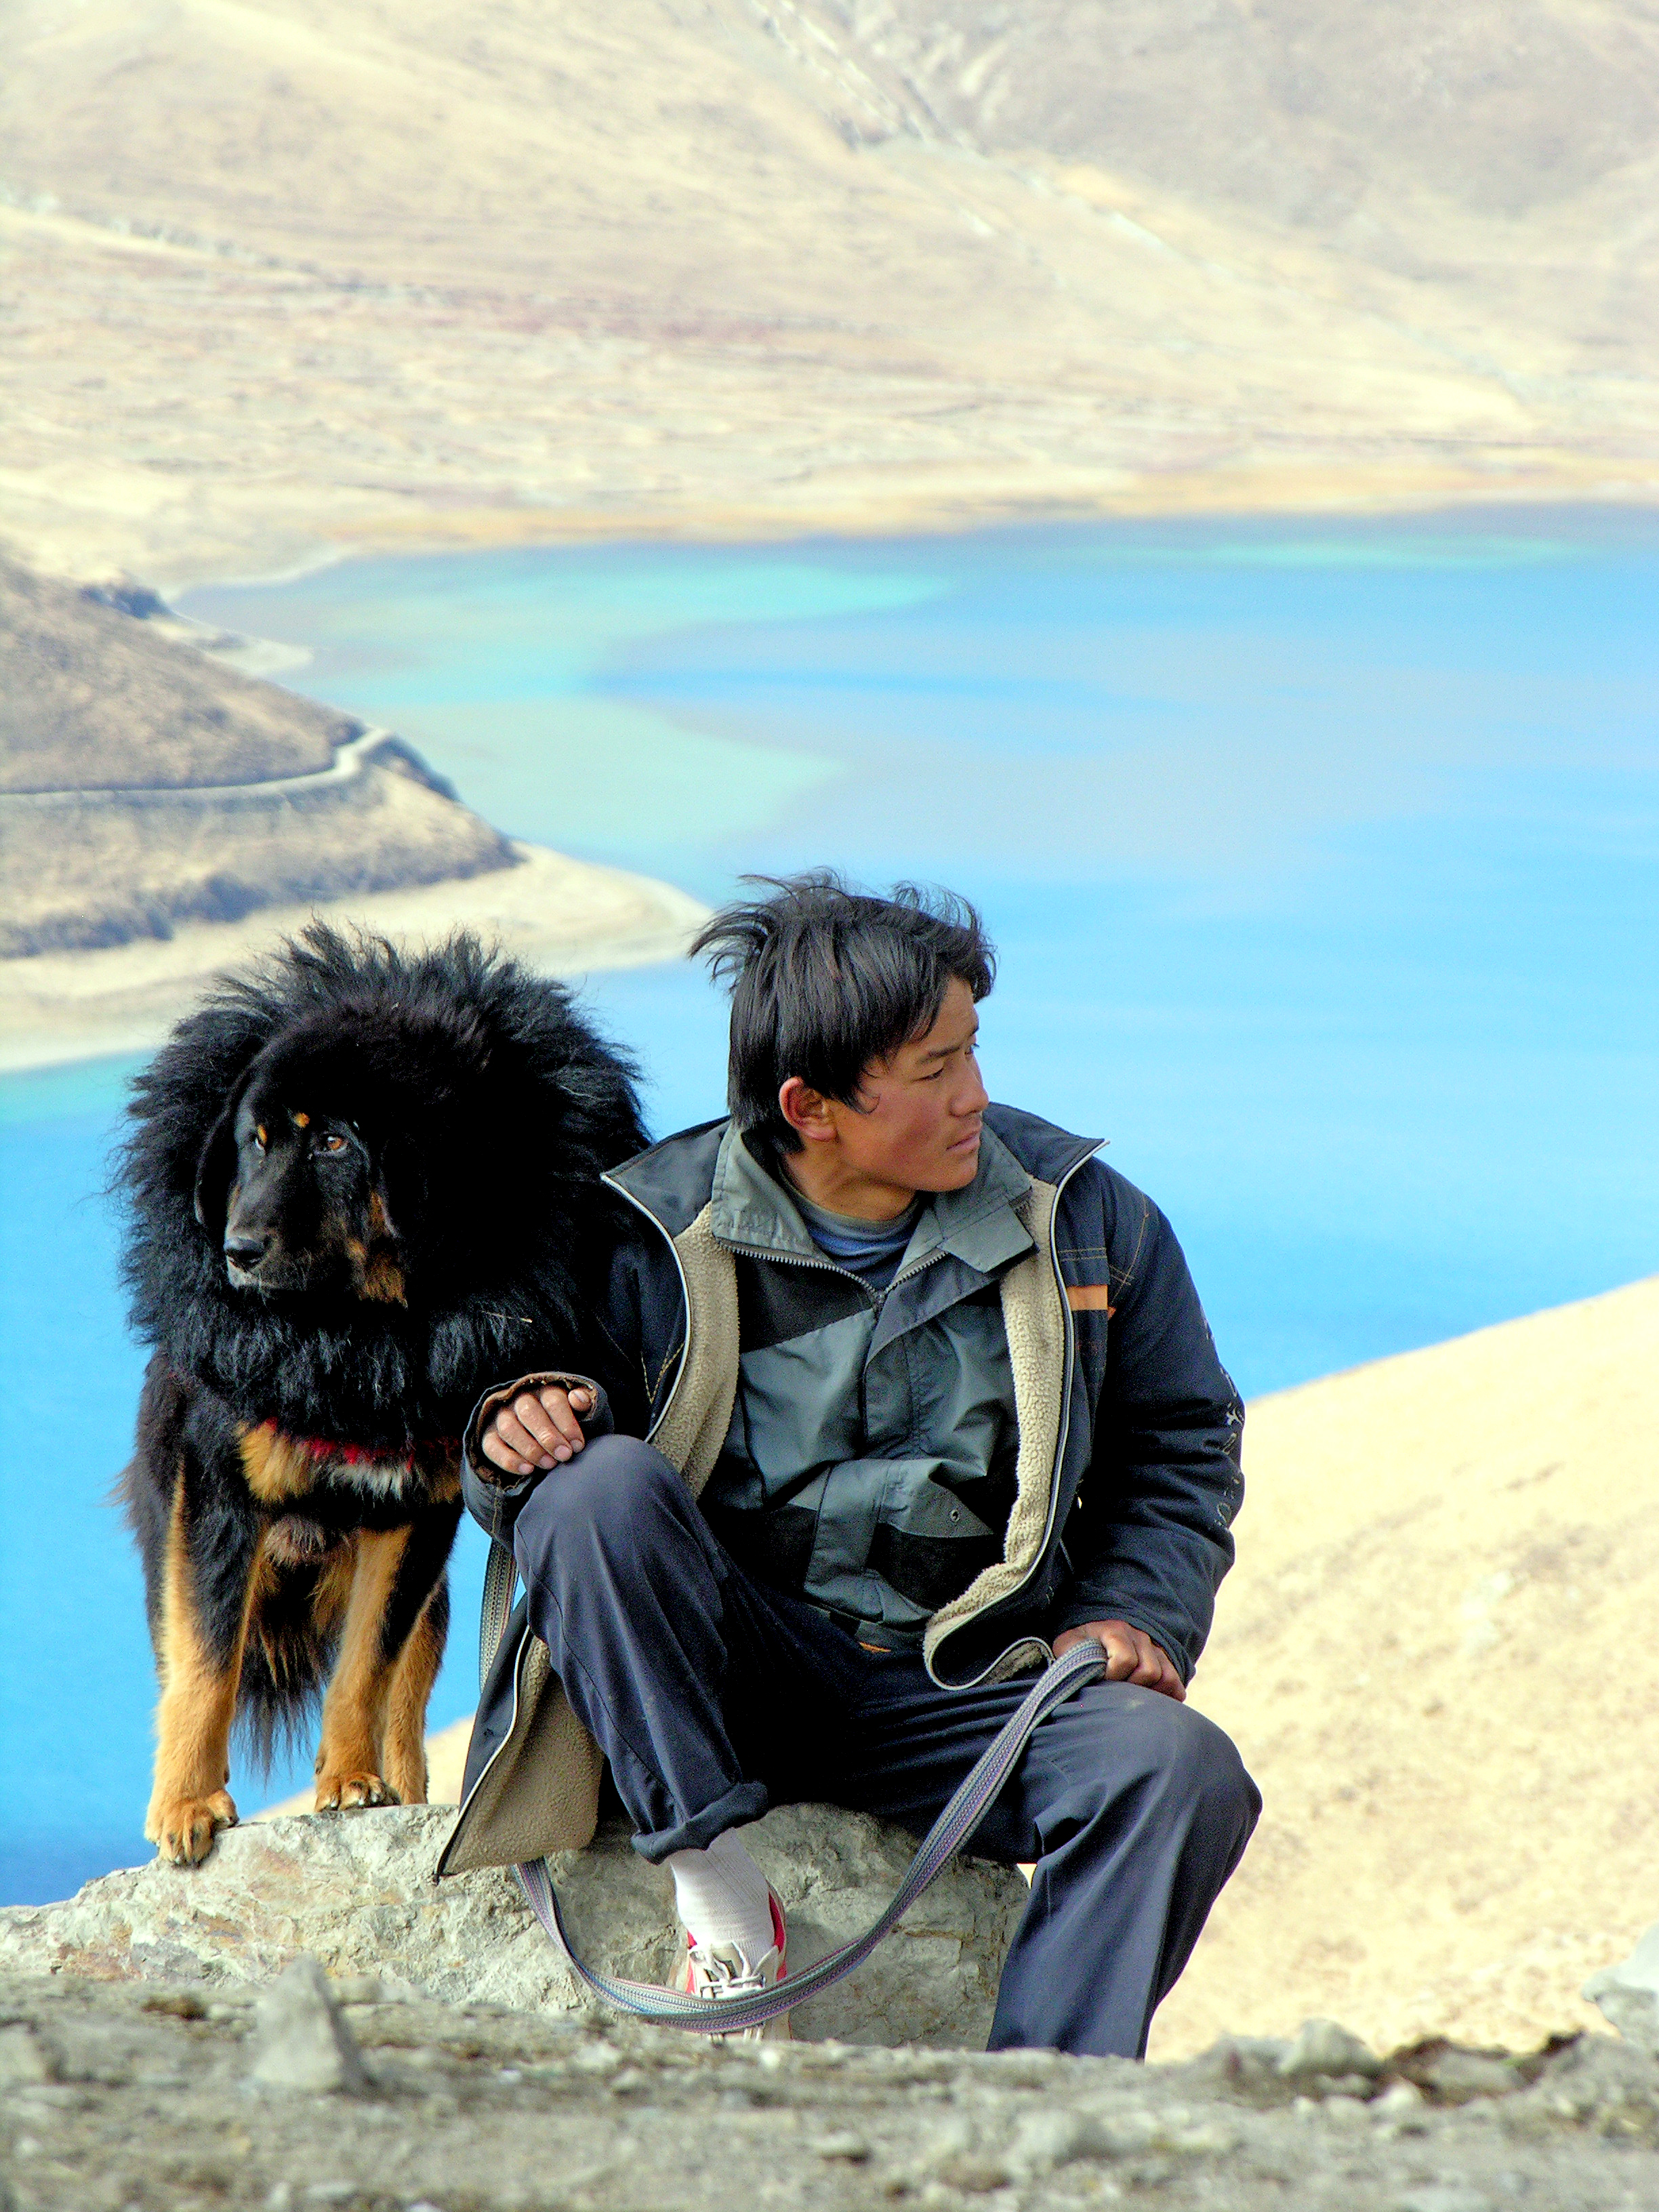 A Tibetan Mastiff in Tibet (Pic from Wikipedia)